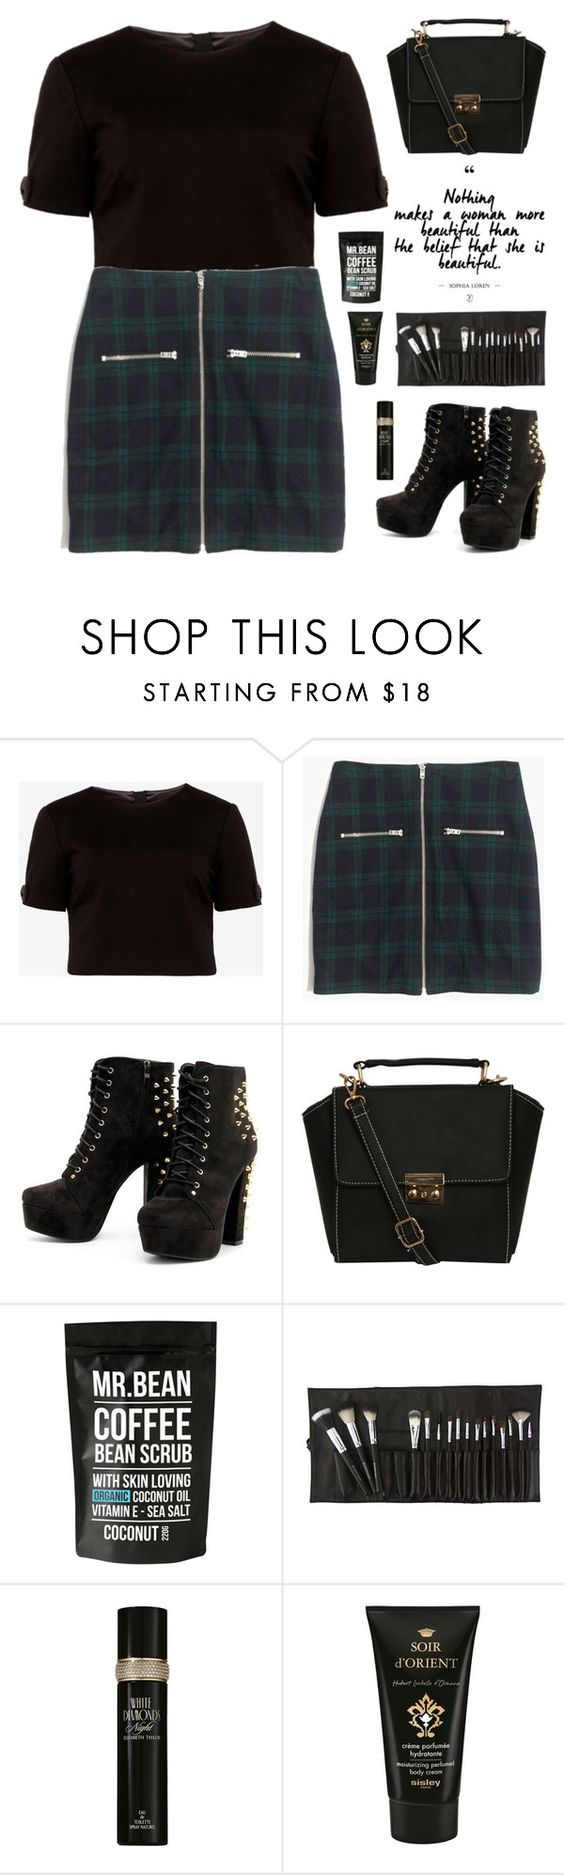 """""""Dark shades"""" by nueova ❤ liked on Polyvore featuring Ted Baker, Madewell, Pilot, Elizabeth Taylor and Sisley"""